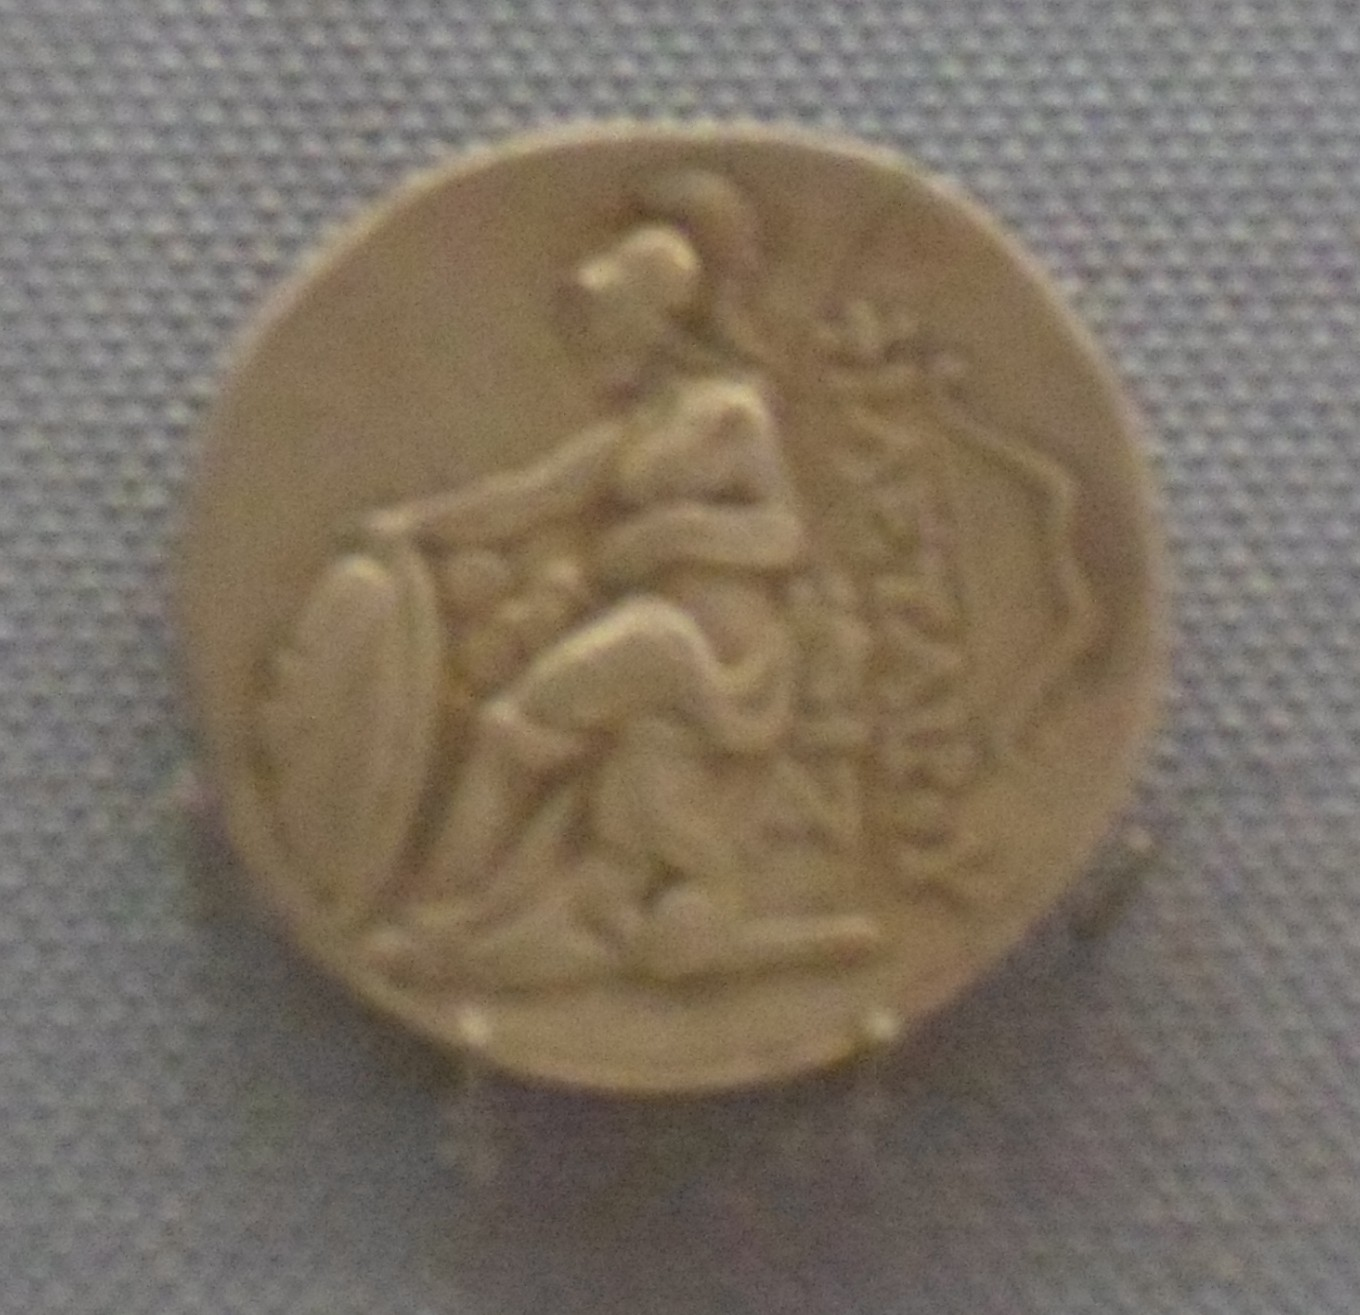 A silver coin with Athena seated on a throne holding a round shield with a word in Greek and a B-shaped bow behind her